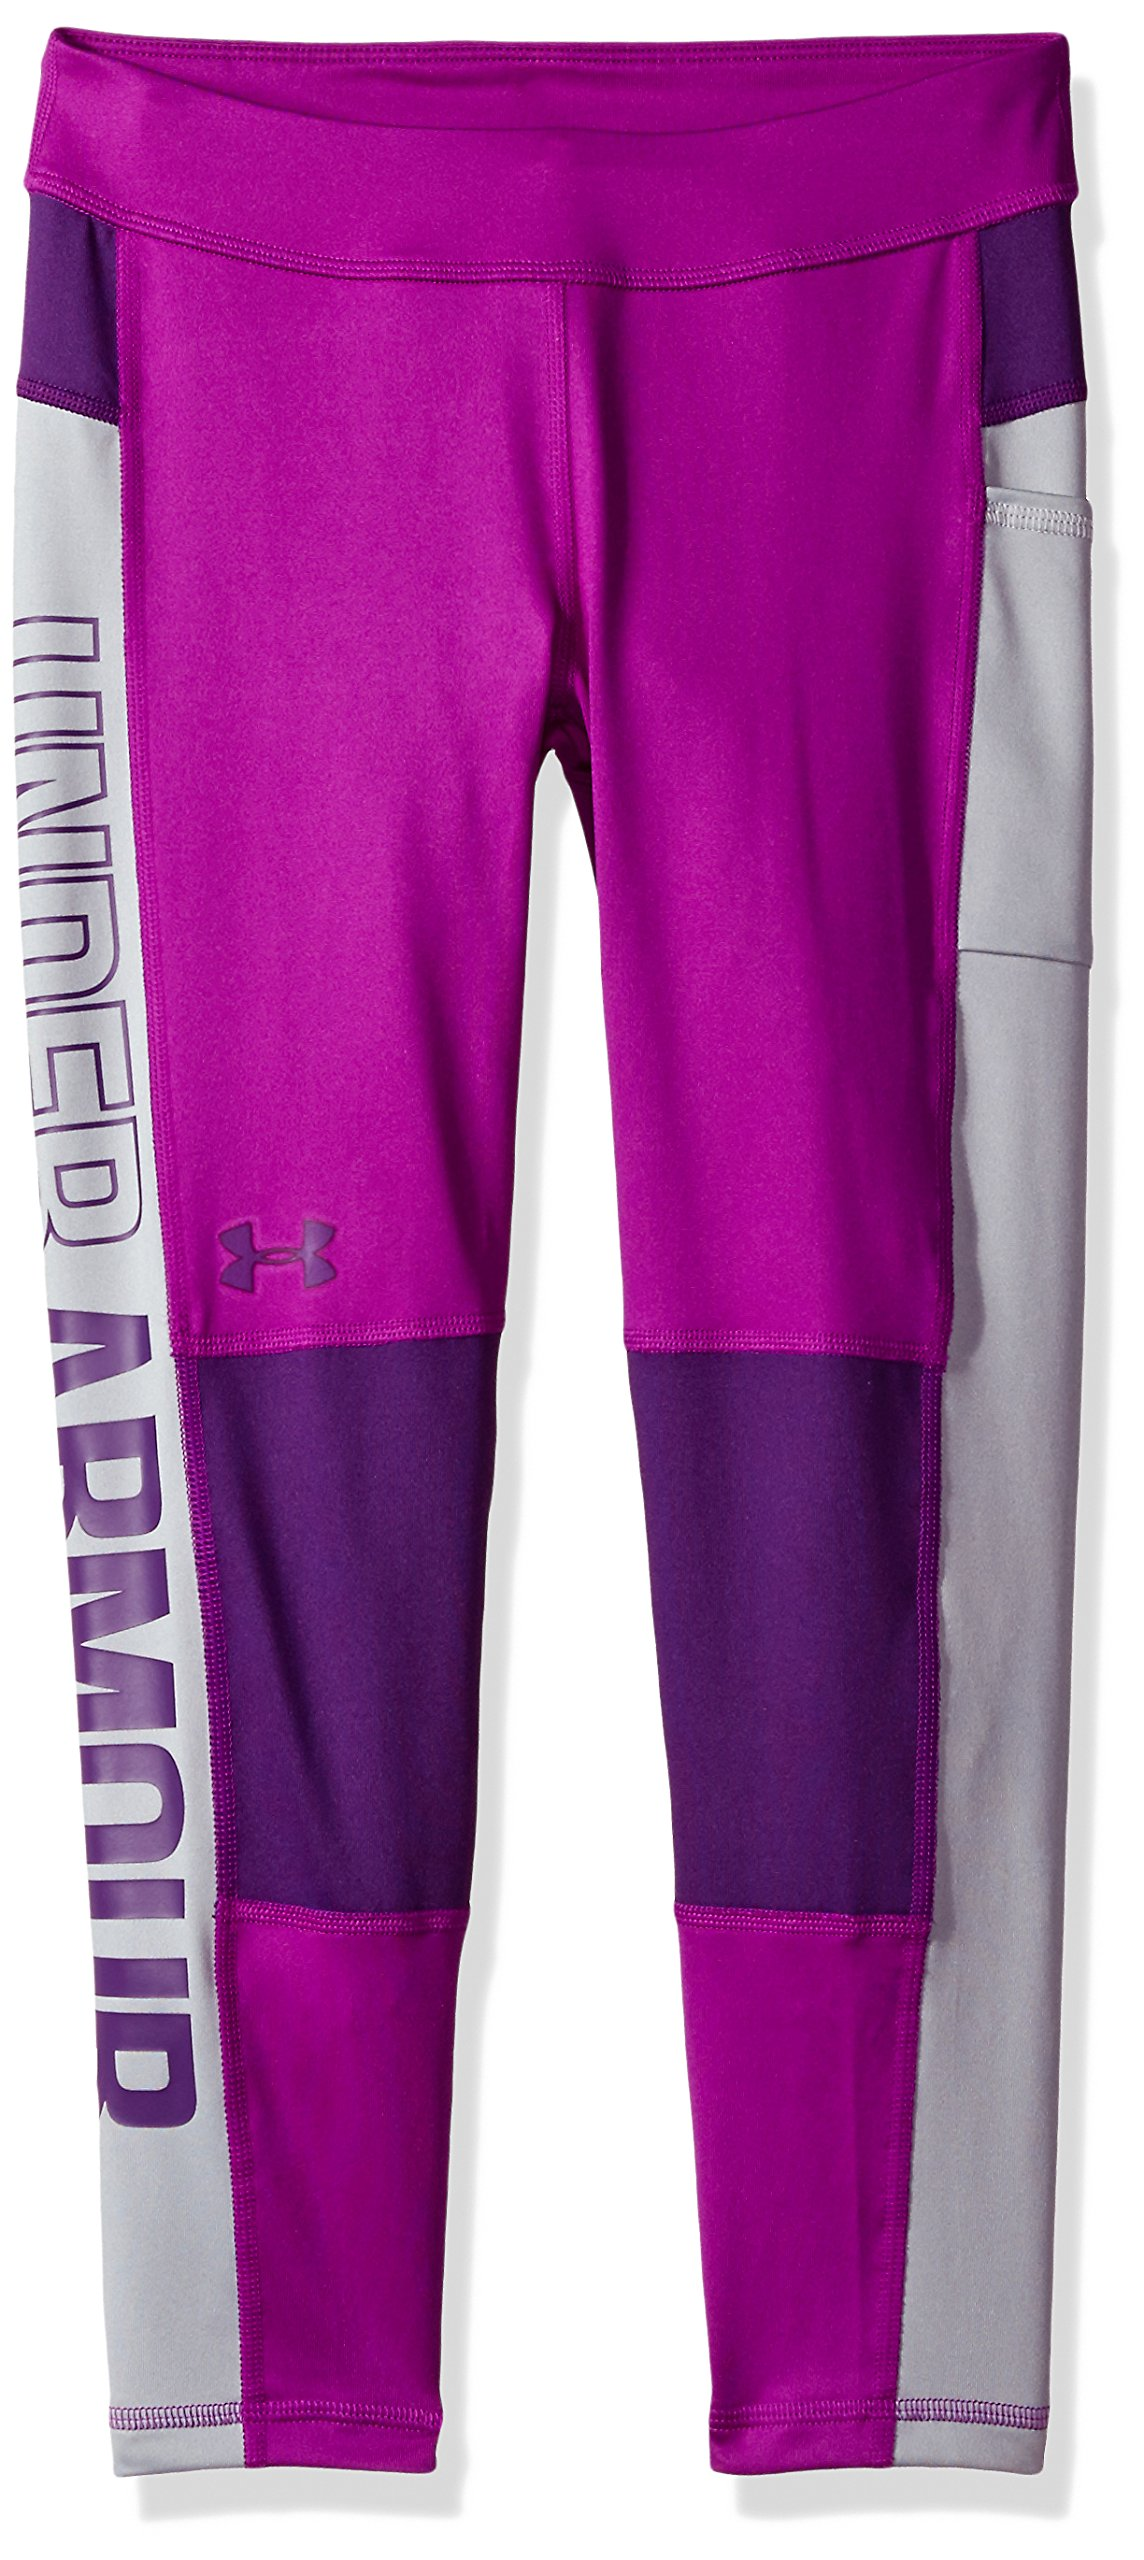 Under Armour Girls' Color Block Crop